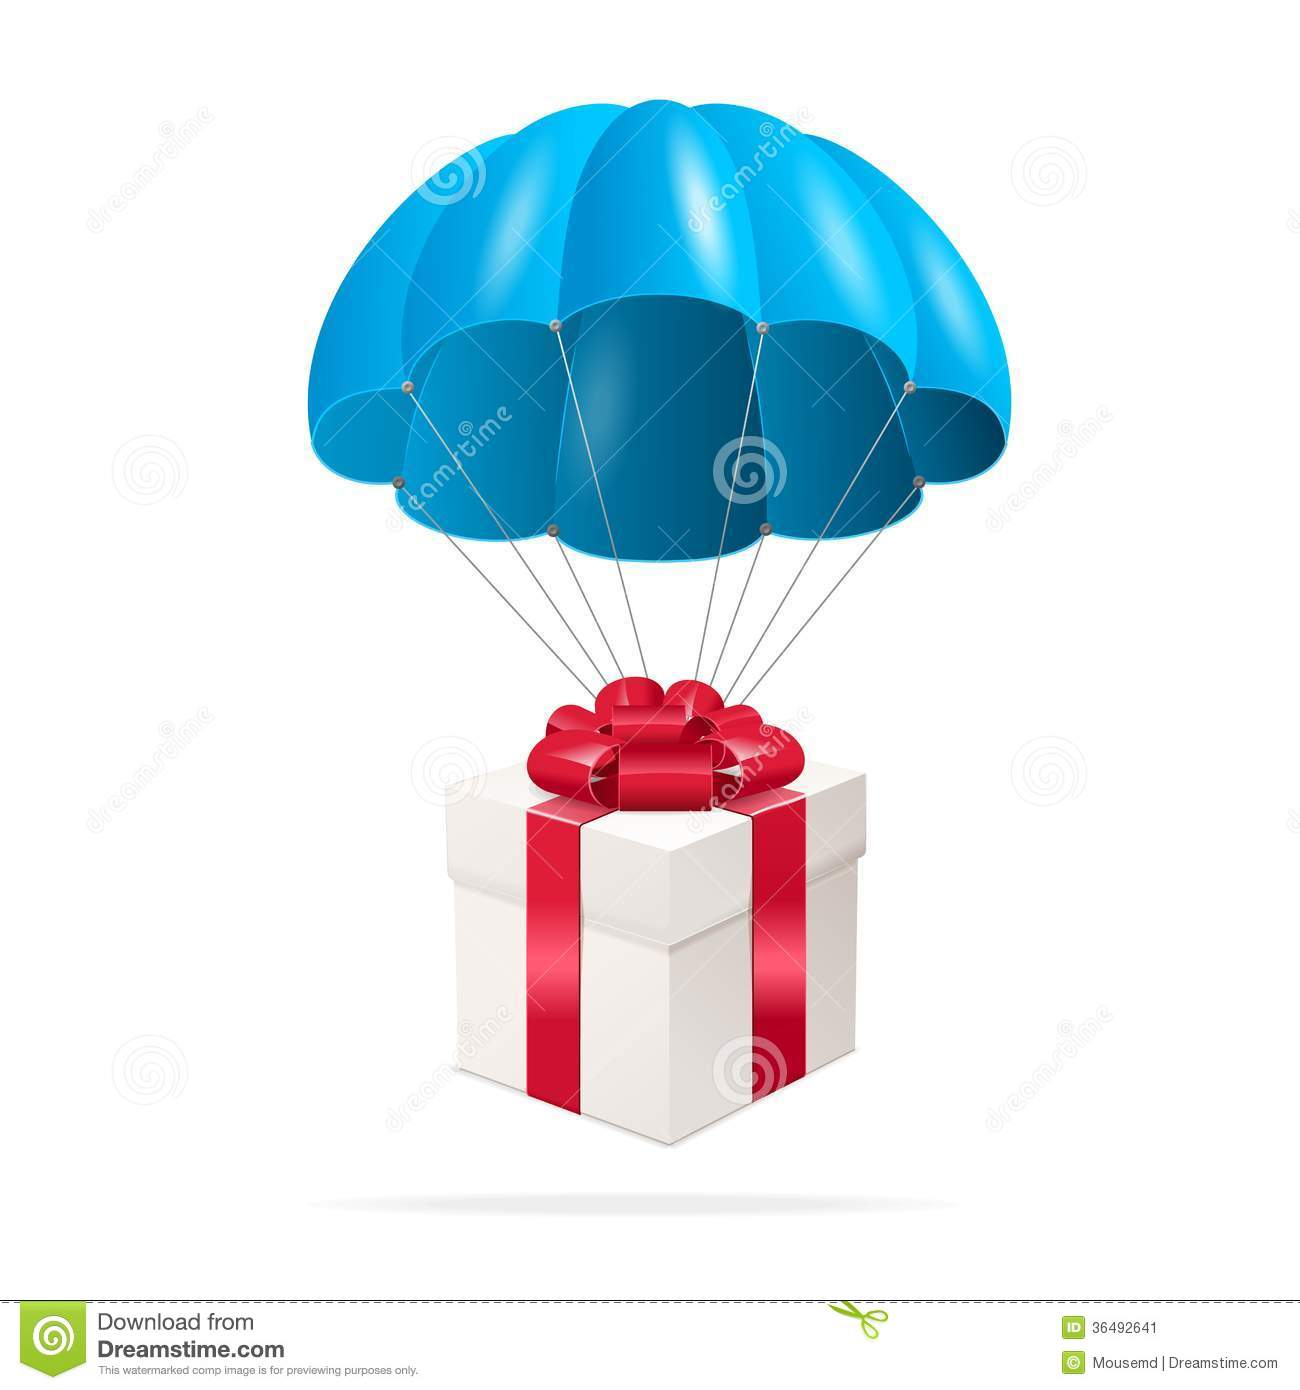 Blue Parachute With A Gift Box Stock Vector - Image: 36492641